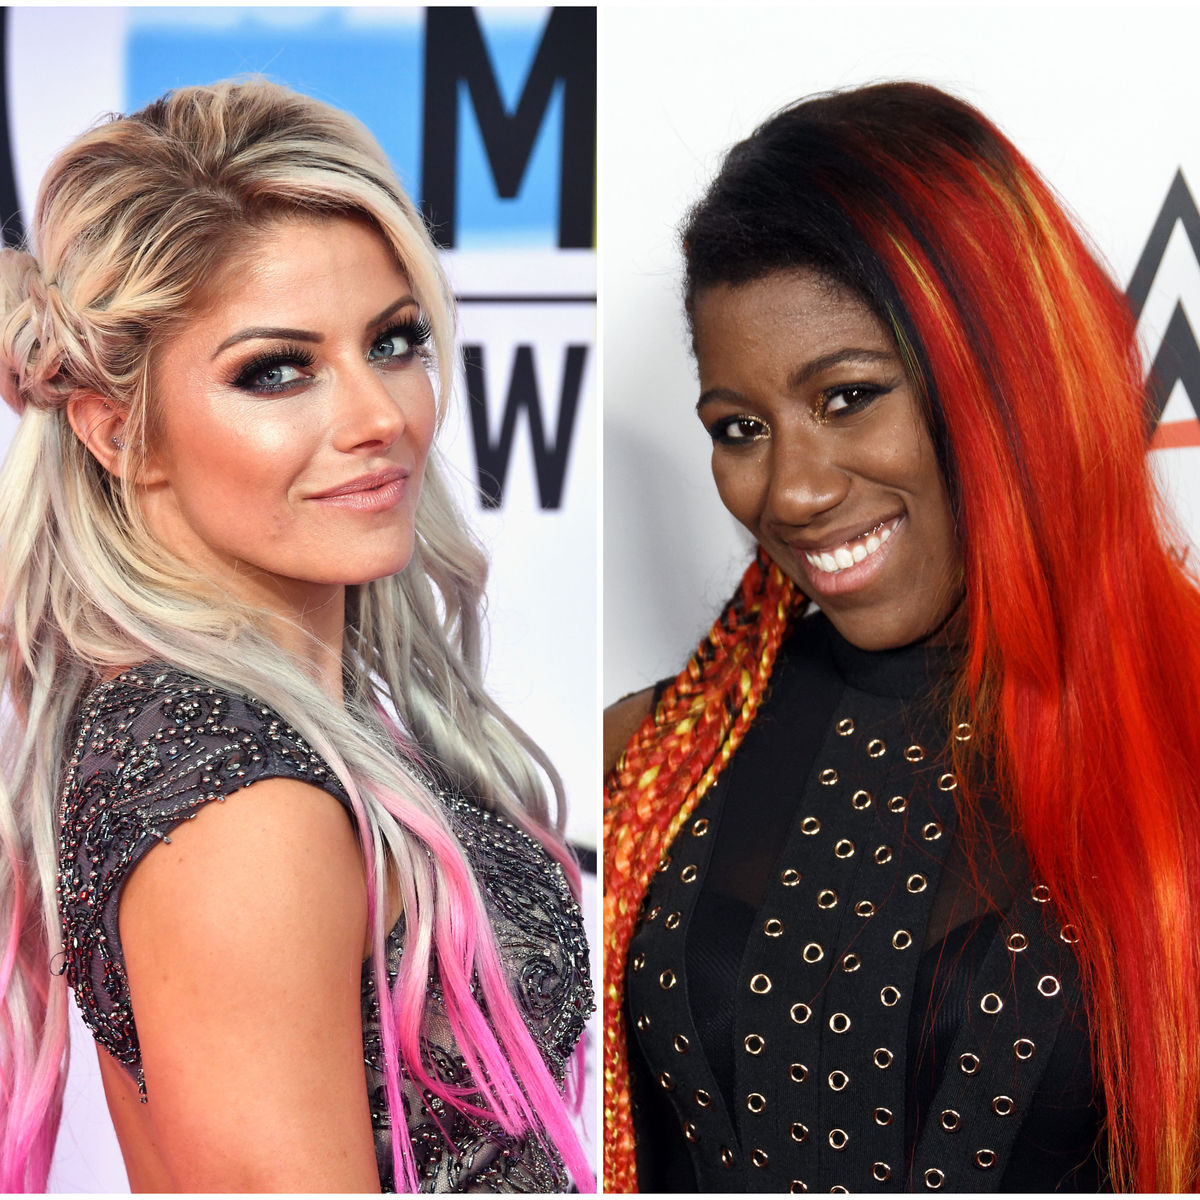 Alexa Bliss and Ember Moon